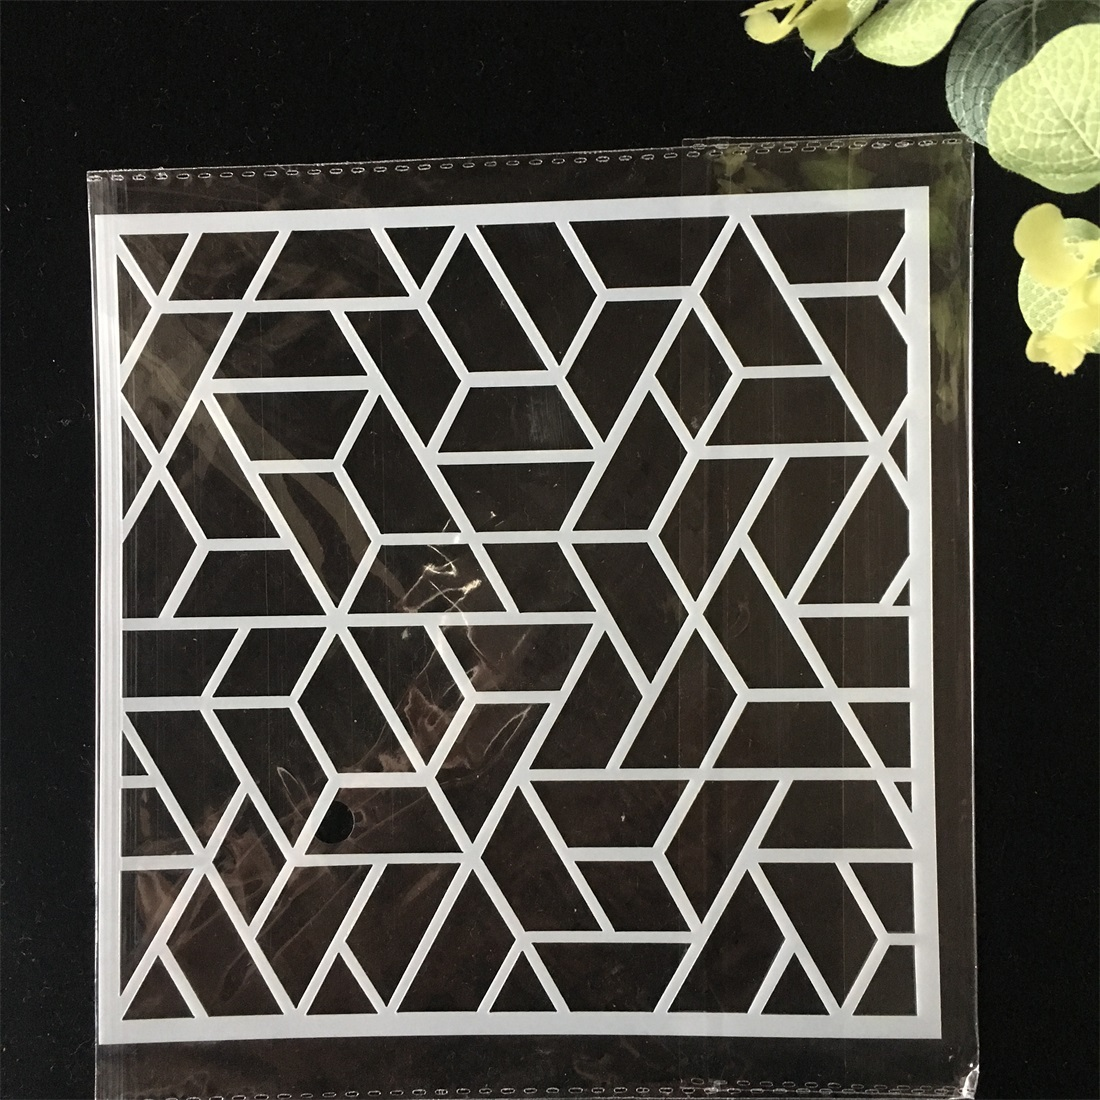 5.9inch Hollow Line DIY Layering Stencils Wall Painting Scrapbook Coloring Embossing Album Decorative Card Template